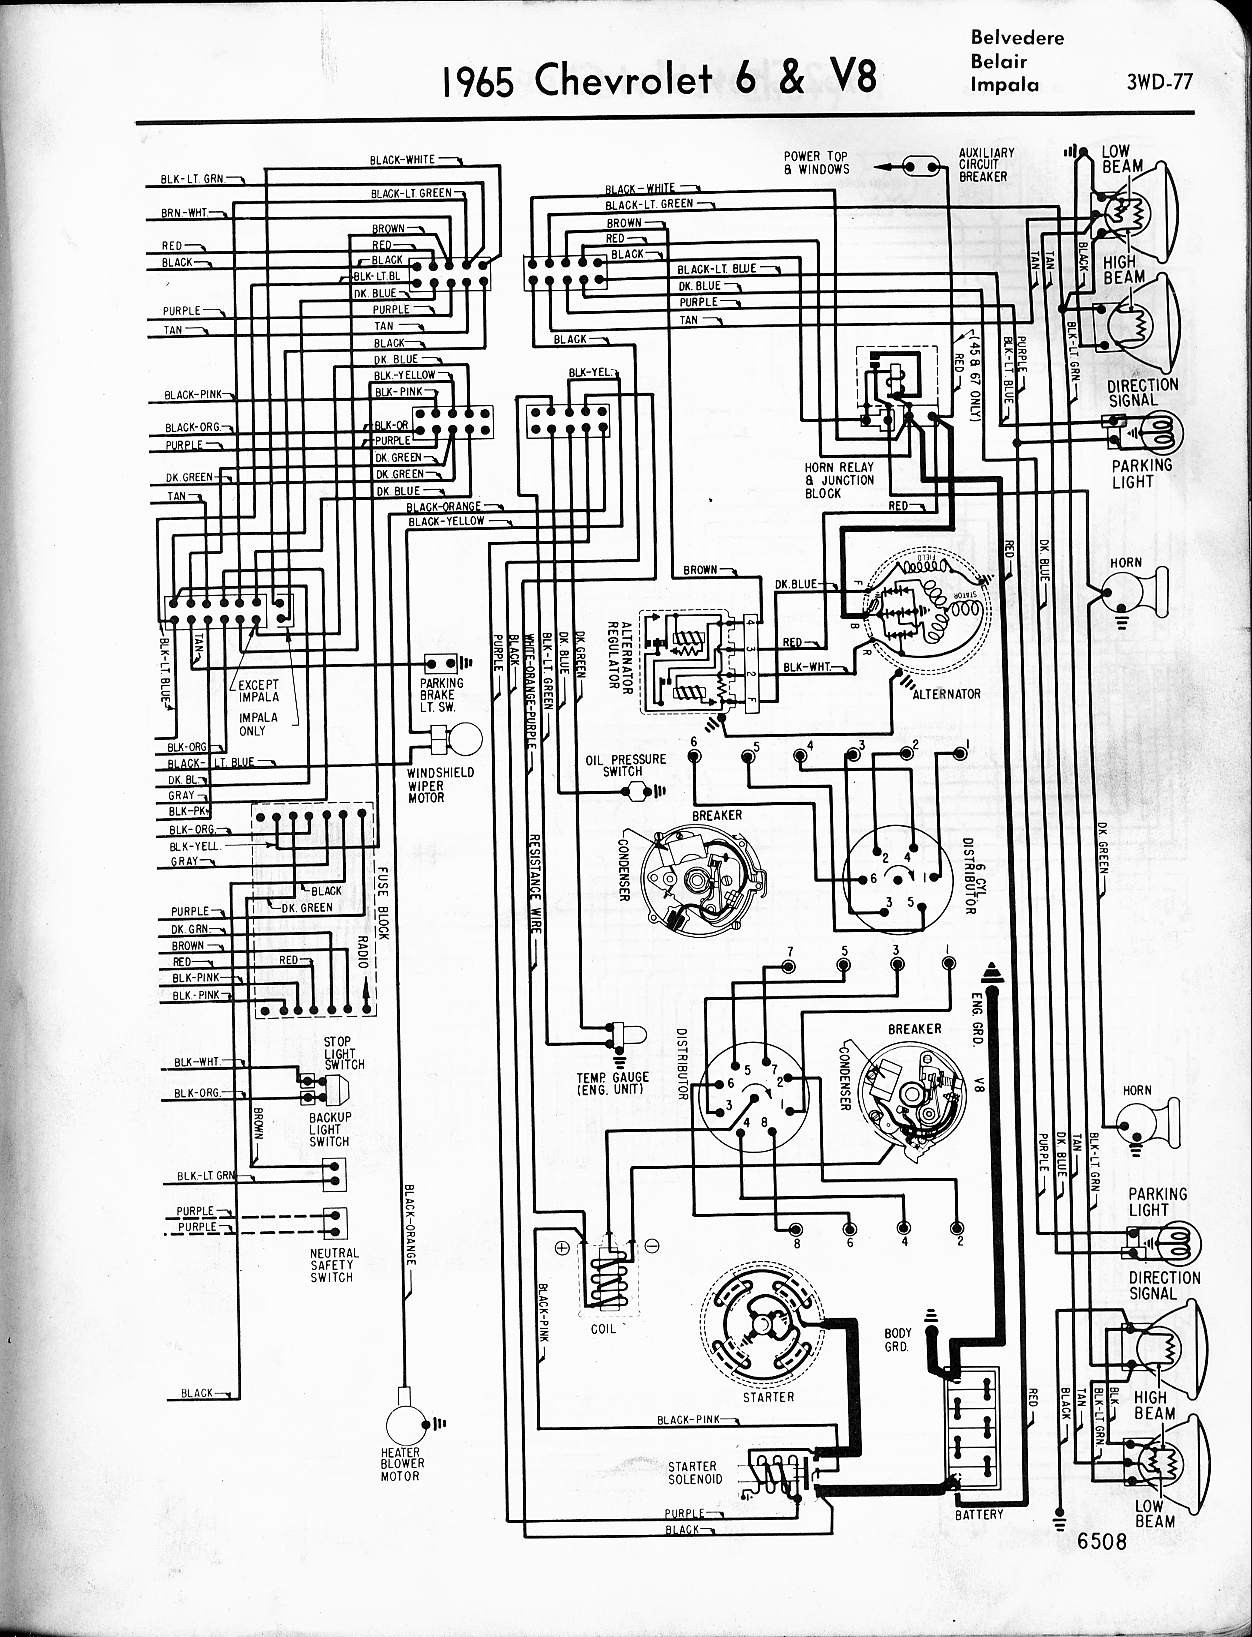 65 Corvette Wiring Schematic Circuit Diagram Symbols 1969 1965 Radio Wire Center U2022 Rh Grooveguard Co 1984